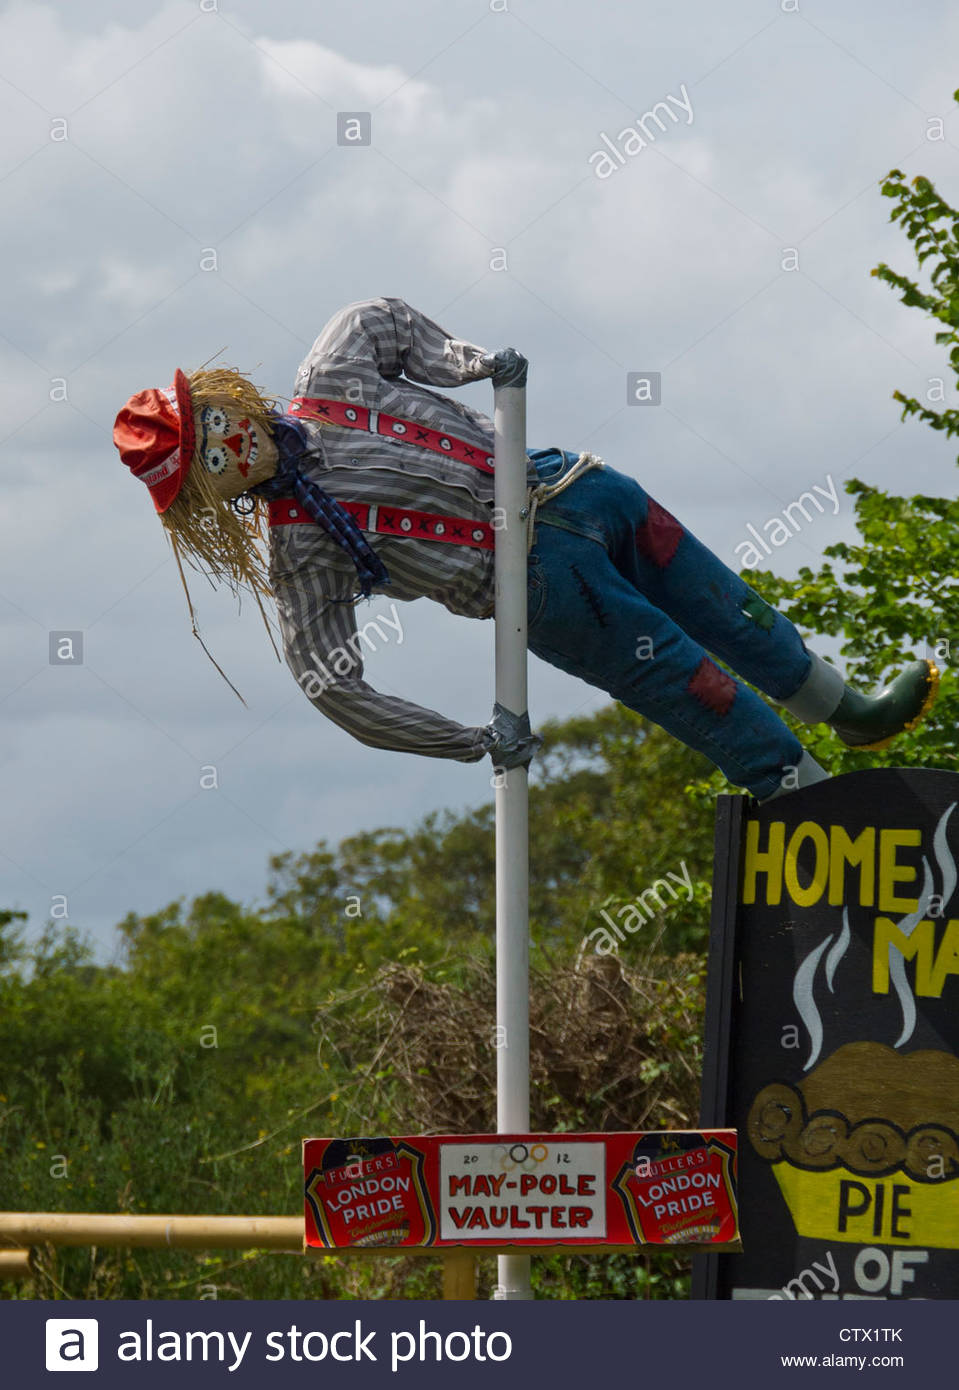 Pole Vaulter Scarecrow Week Hayling Island Hampshire England UK - Stock Image